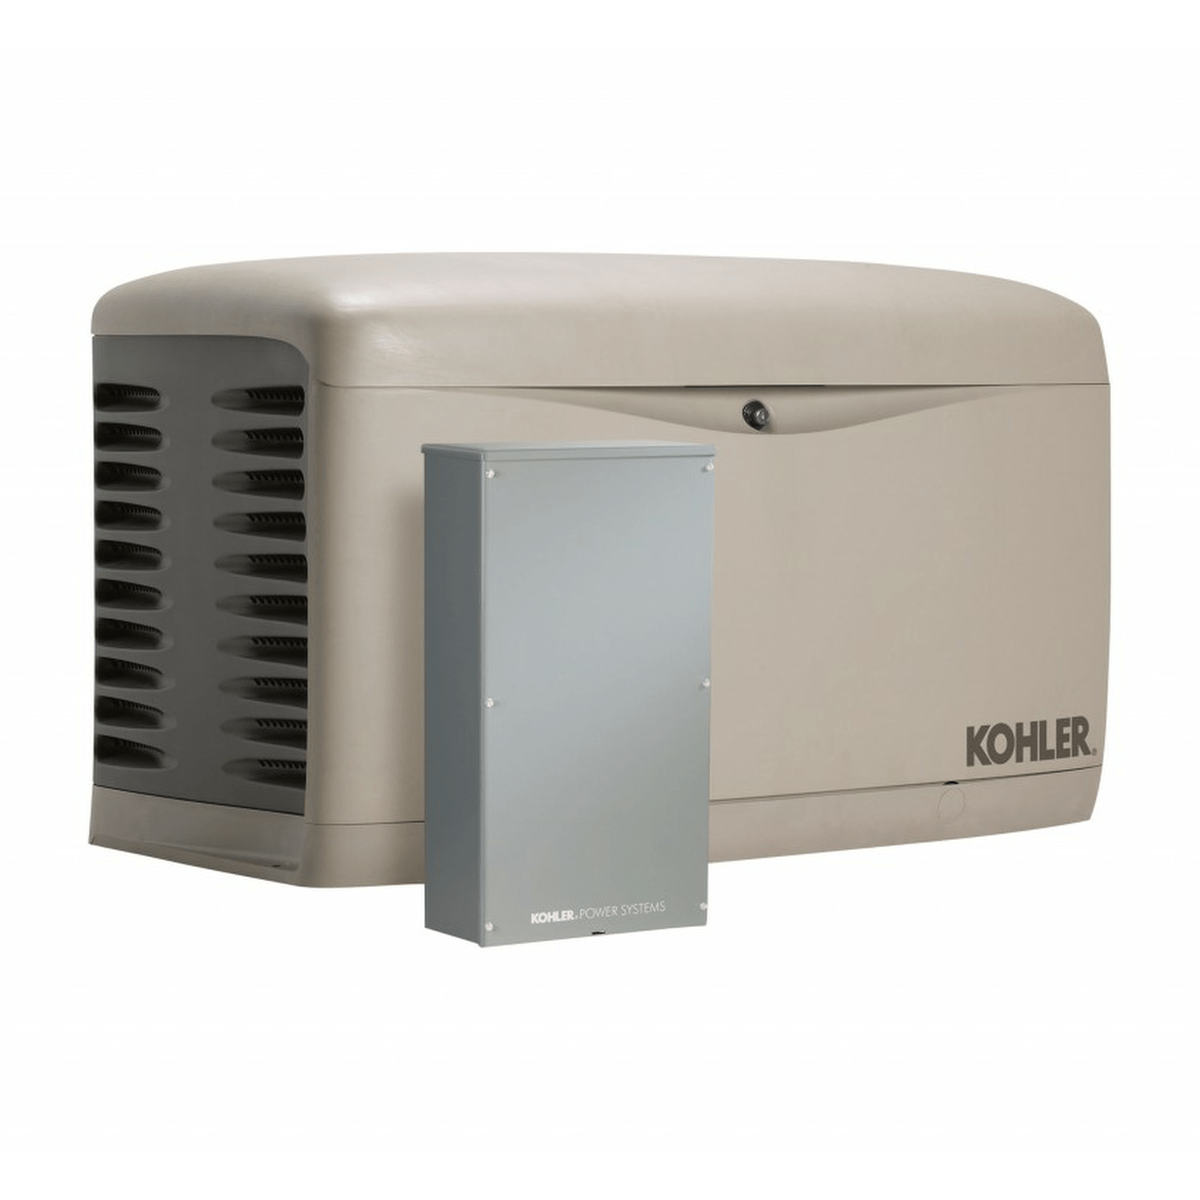 small resolution of kohler 20resal 100lc16 20kw generator with 100a 16 circuit transfer switch